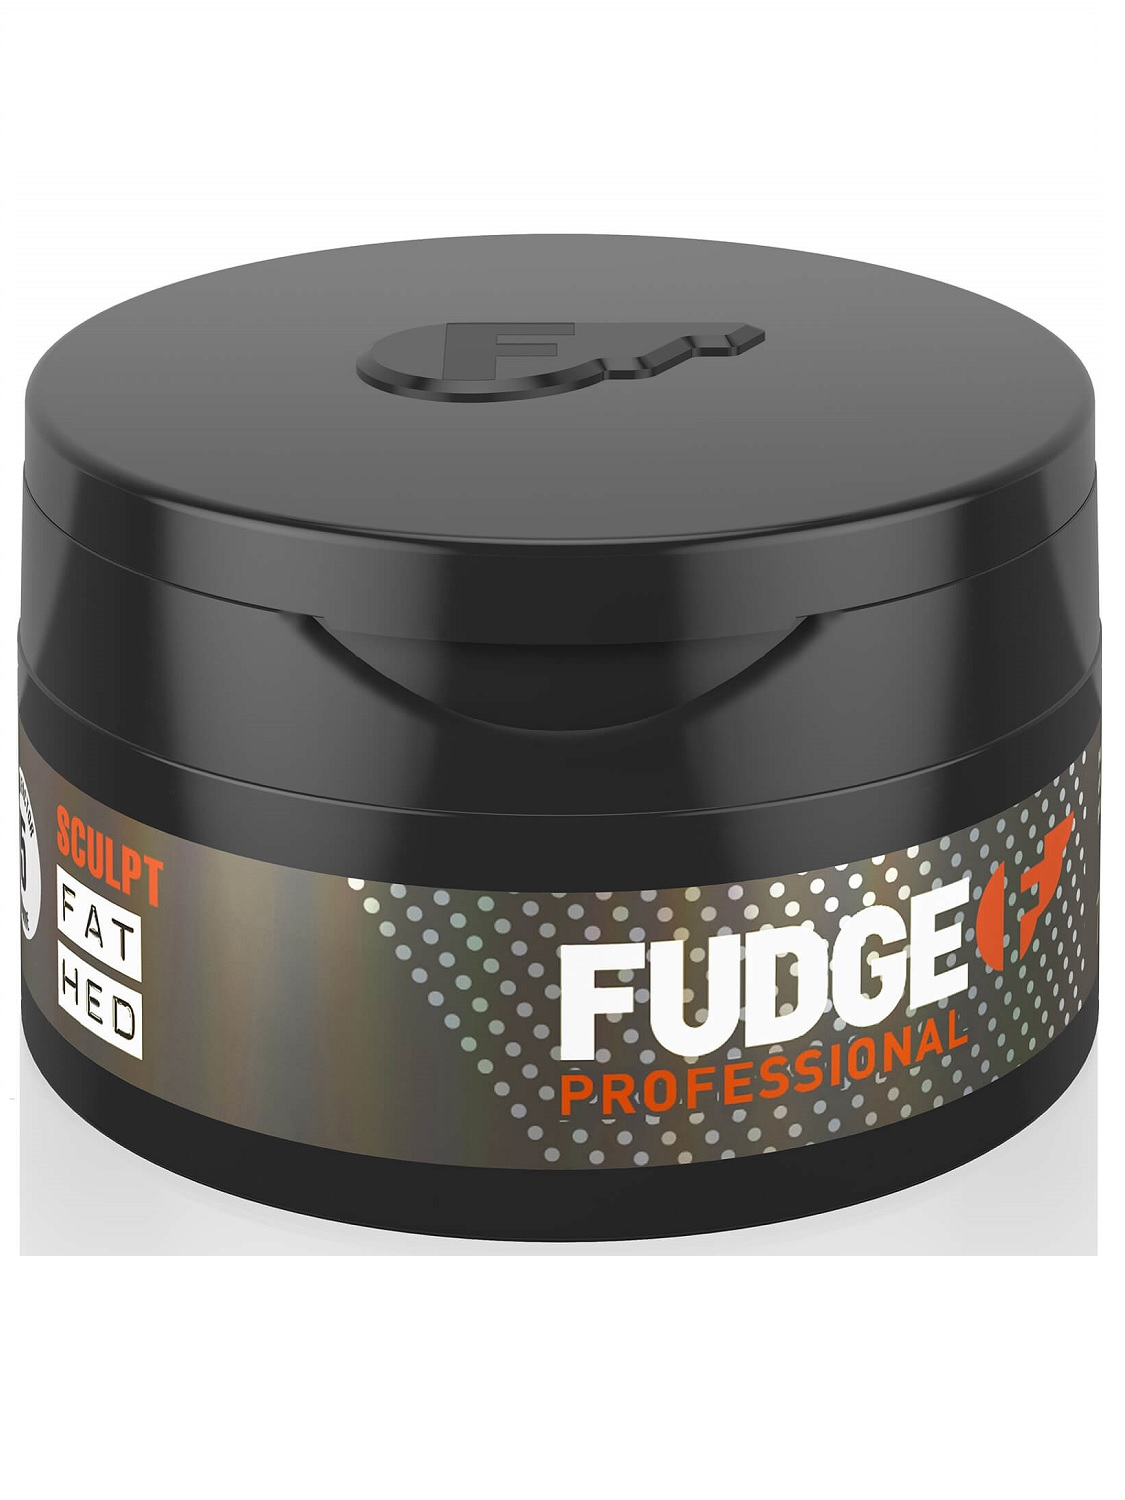 Fudge Fat Hed (75g)